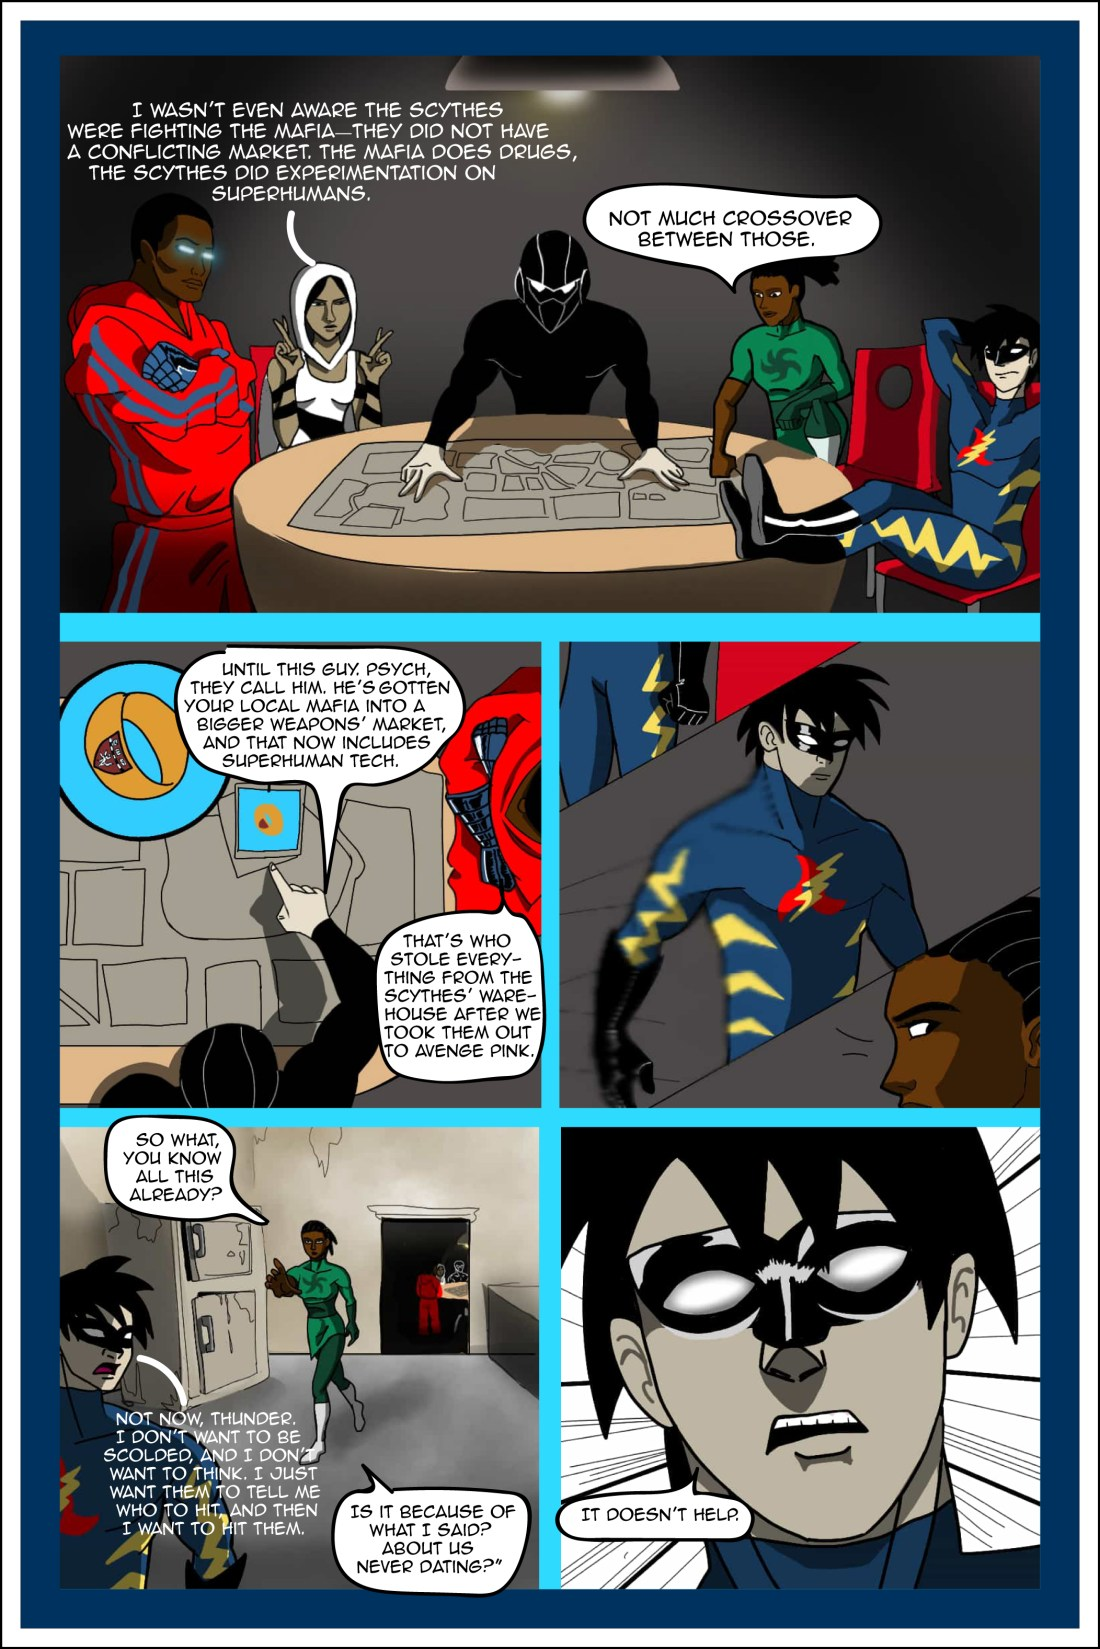 """PAGE THREE PANEL 1 Five superheroes sit around a dimly-lit poker table in some dark basement somewhere. Mark's spread a map on the table. Skye lounges back with his feet on the table, uber-relaxed. Butterfly sits very appropriately, with her fingers crossed almost as if in prayer. Natasha stands intensely over the table with one foot on a chair and her fist on the corner of the map. Robotman stands with arms crossed. Butterfly: """"I wasn't even aware the Scythes were fighting the Mafia—they did not have a conflicting market. The Mafia does drugs, the Scythes did experimentation on superhumans."""" Natasha: """"Not much crossover between those."""" PANEL 2 Mark points to a photograph of a ring, above the map. It's a ring with a Harvard medical school logo on it. Mark: """"Until this guy. Psych, they call him. He's gotten your local Mafia into a bigger weapons' market, and that now includes superhuman tech."""" Robotman: """"That's who stole everything from the Scythes' warehouse after we took them out to avenge Pink."""" Mark: """"Right."""" PANEL 3 Skye rises to leave the room, looking discouraged. Natasha notices. PANEL 4 Basement """"kitchen"""", dingy, with an old-looking fridge. Through the door we can still see into the lit """"poker"""" room where the other heroes are strategizing. Natasha: """"So what, you know all this already?"""" Skye: """"Not now, Thunder. I don't want to be scolded, and I don't want to think. I just want them to tell me who to hit, and then I want to hit them."""" Natasha: """"Is it because of what I said? About us never dating?"""" PANEL 5 Skye's face. Skye: """"It doesn't help."""""""